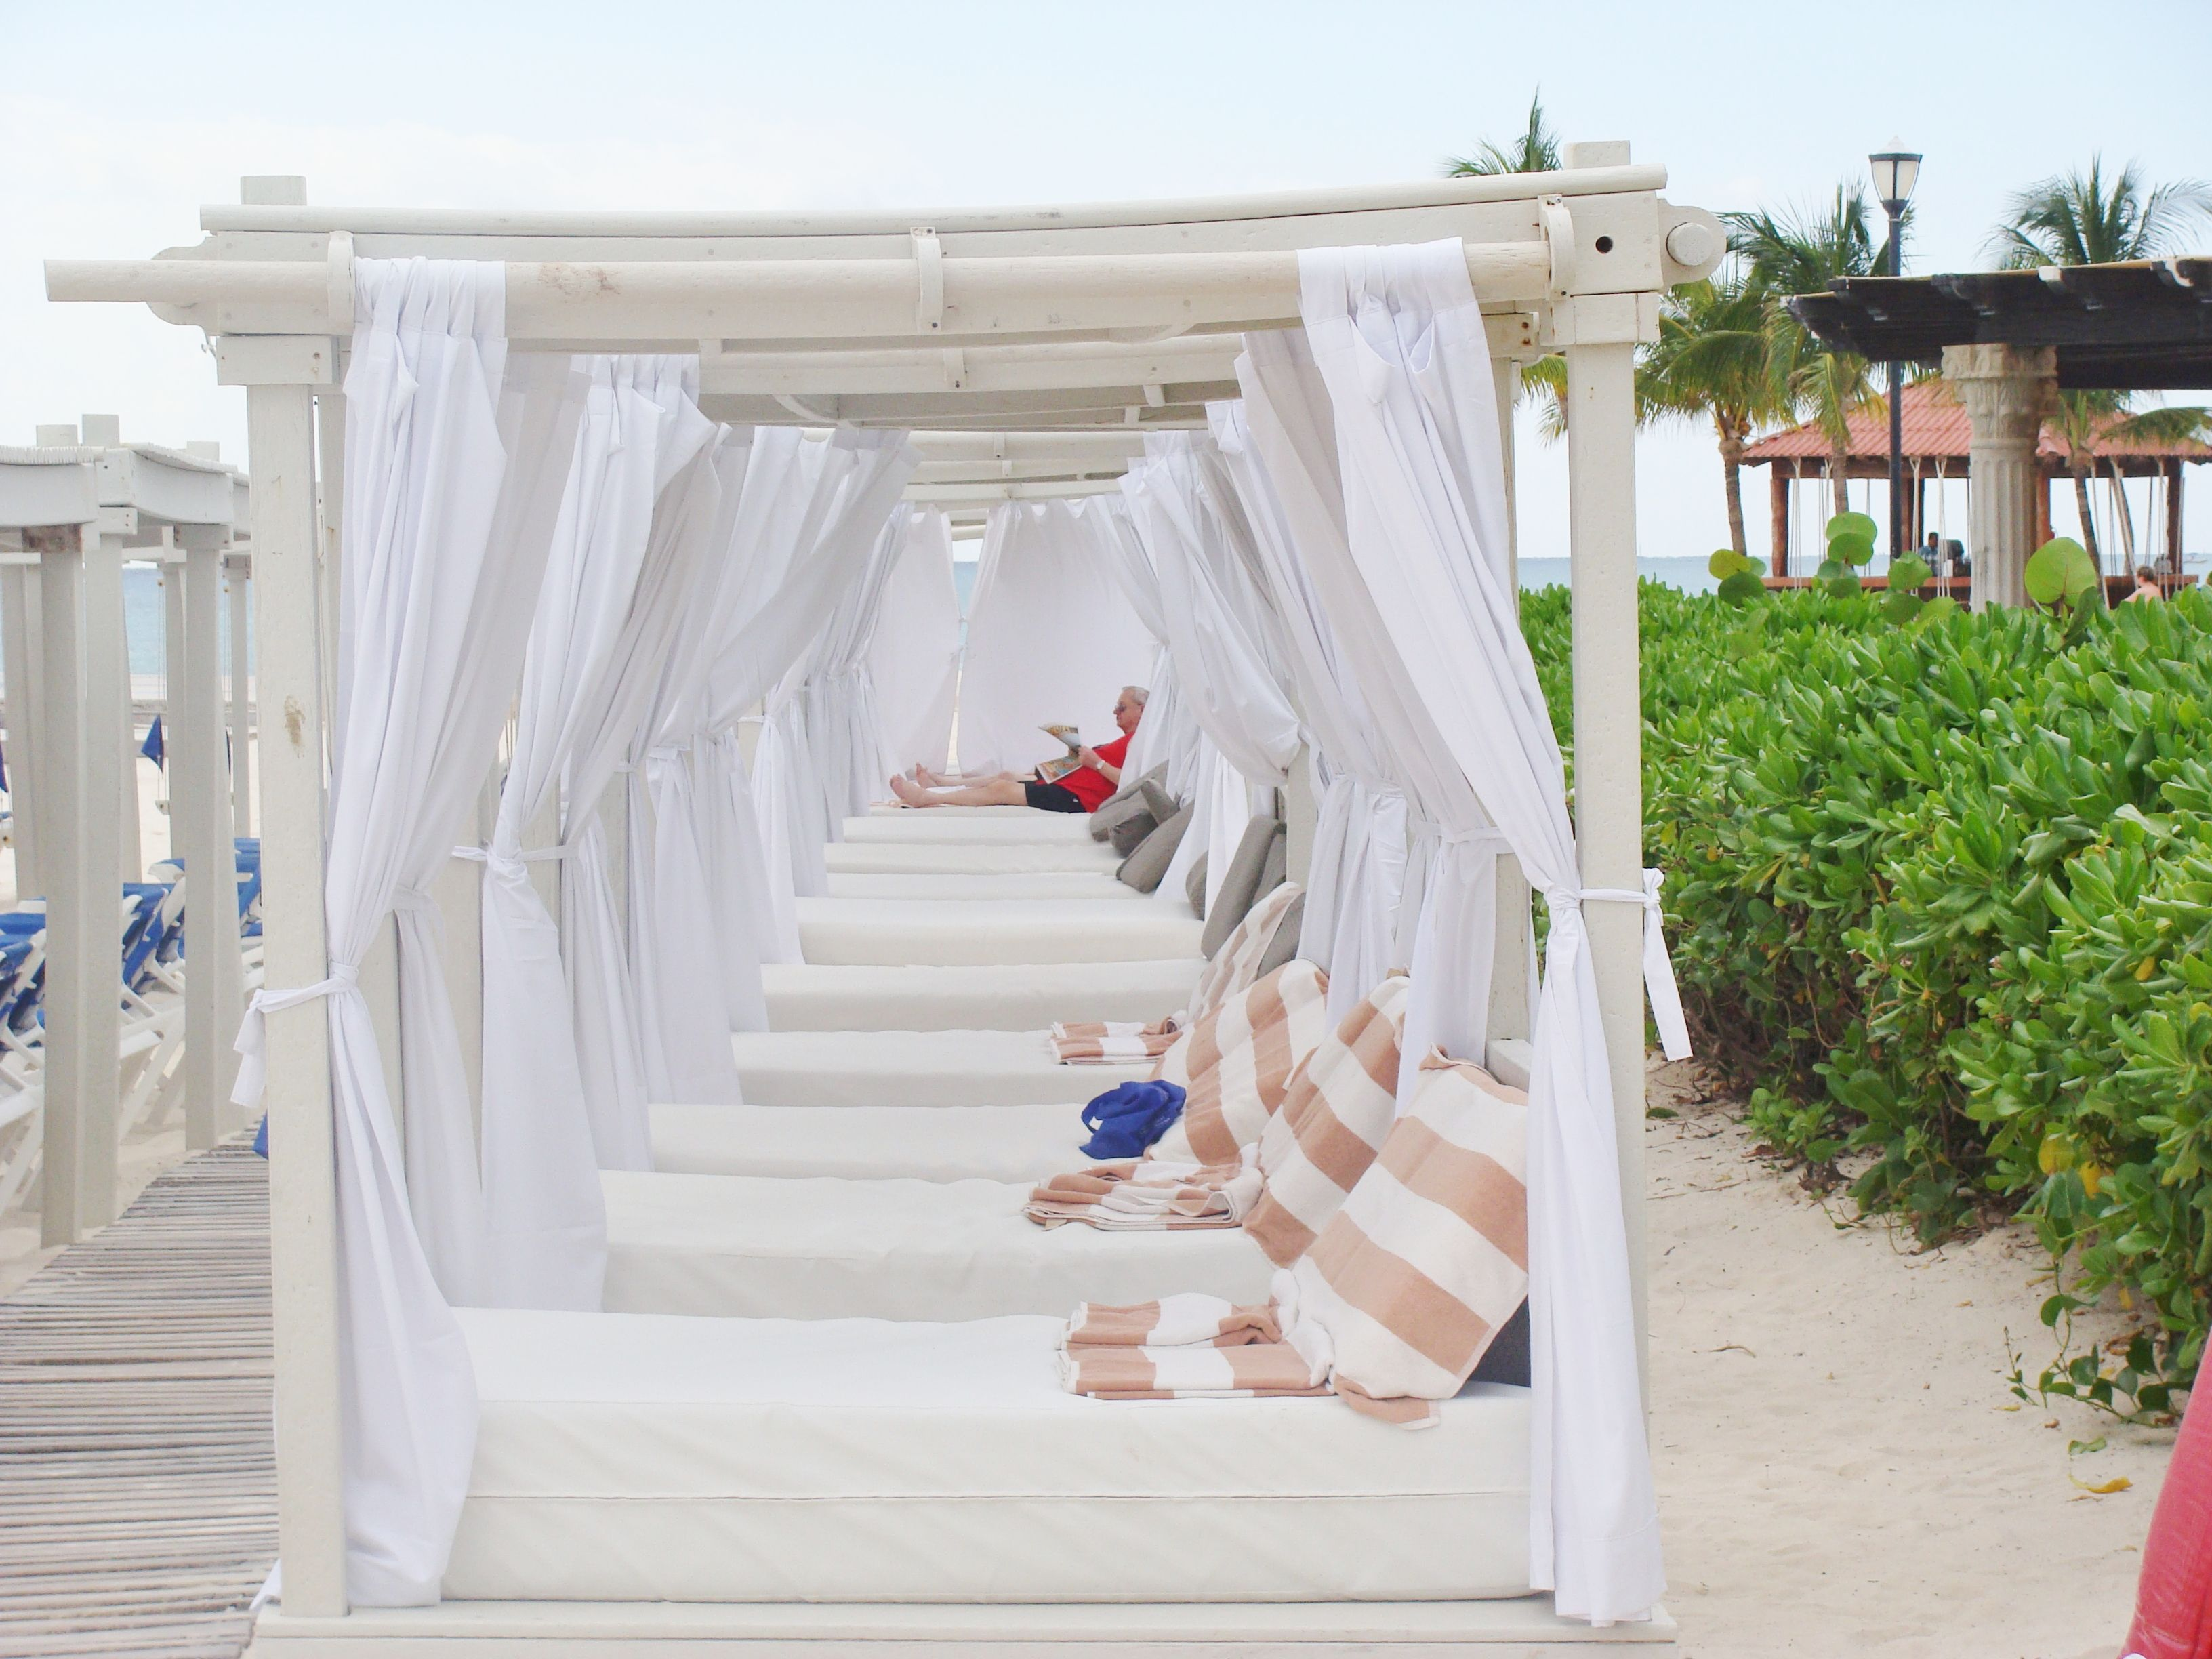 Pick your beach bed, next meet your beach butler, order your beverage of choice then settle in for a romantic and relaxing one-on-one day with someone special. We'll take you there, 888-696-4202, Wild Side Destinations, Director of Romance PJ!